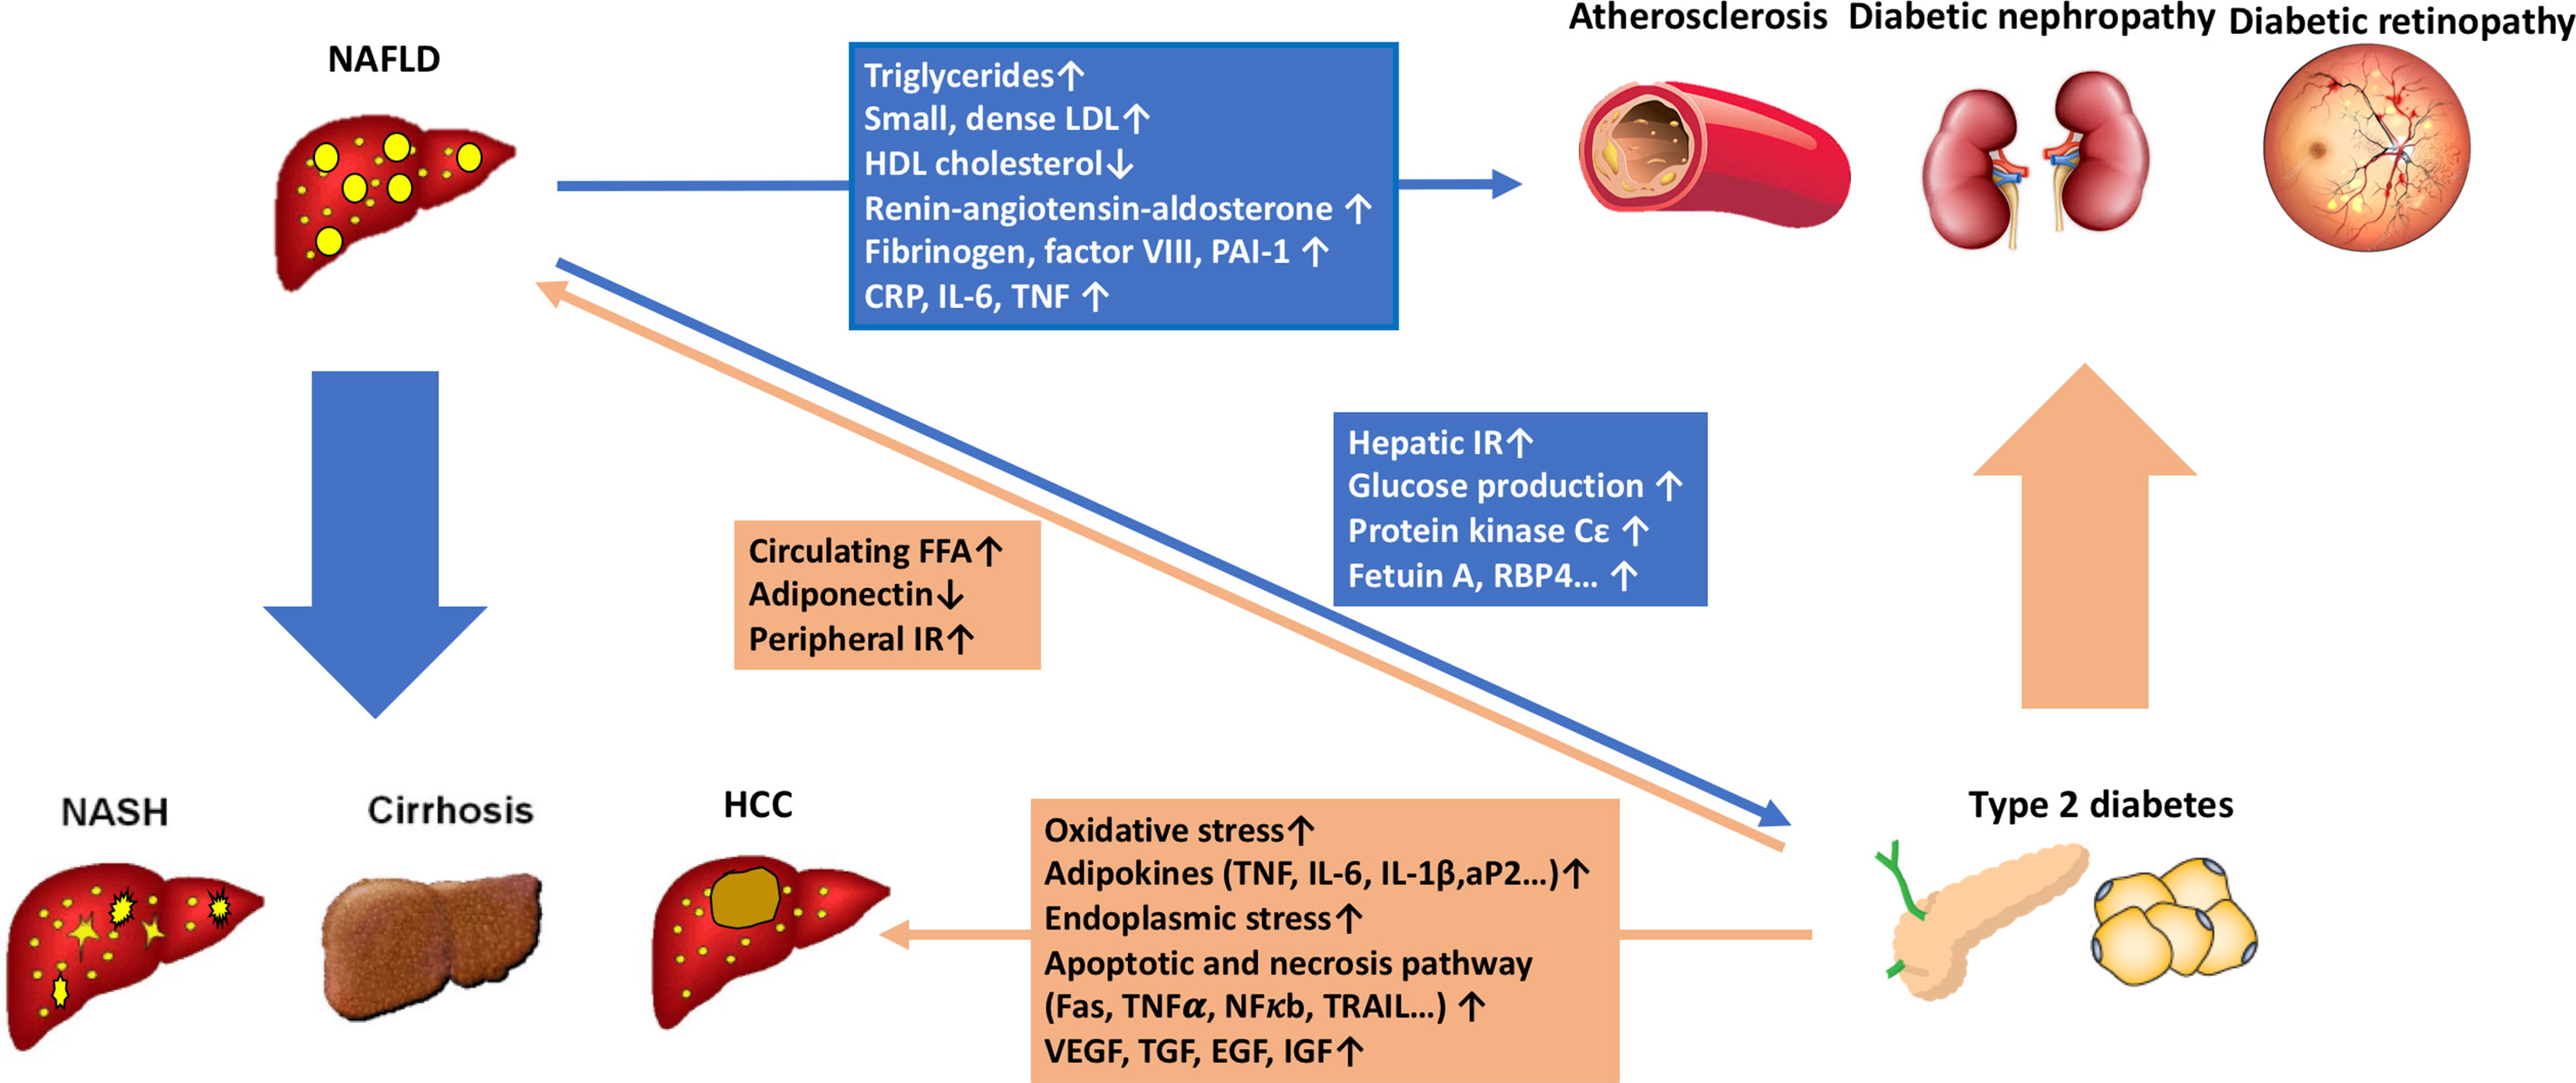 can a nondiabetic diet cause fatty liver